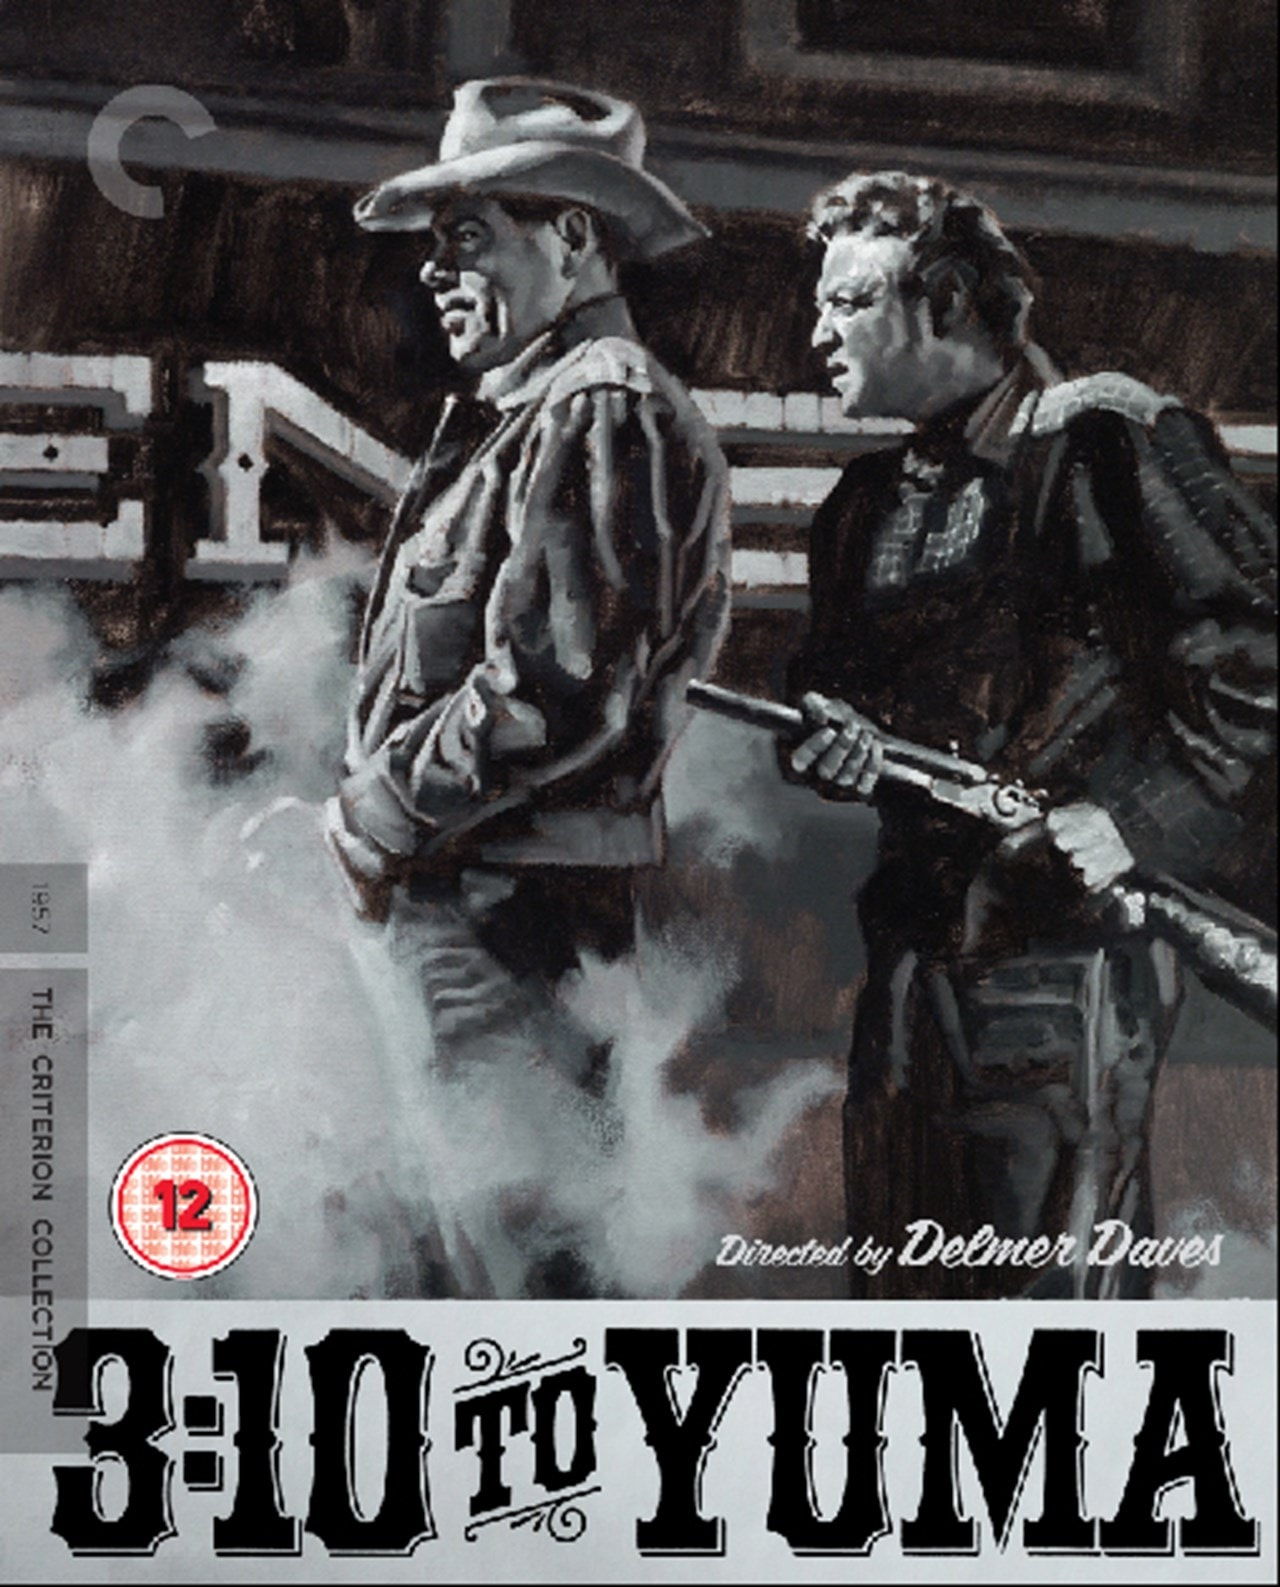 3:10 to Yuma - The Criterion Collection - 1